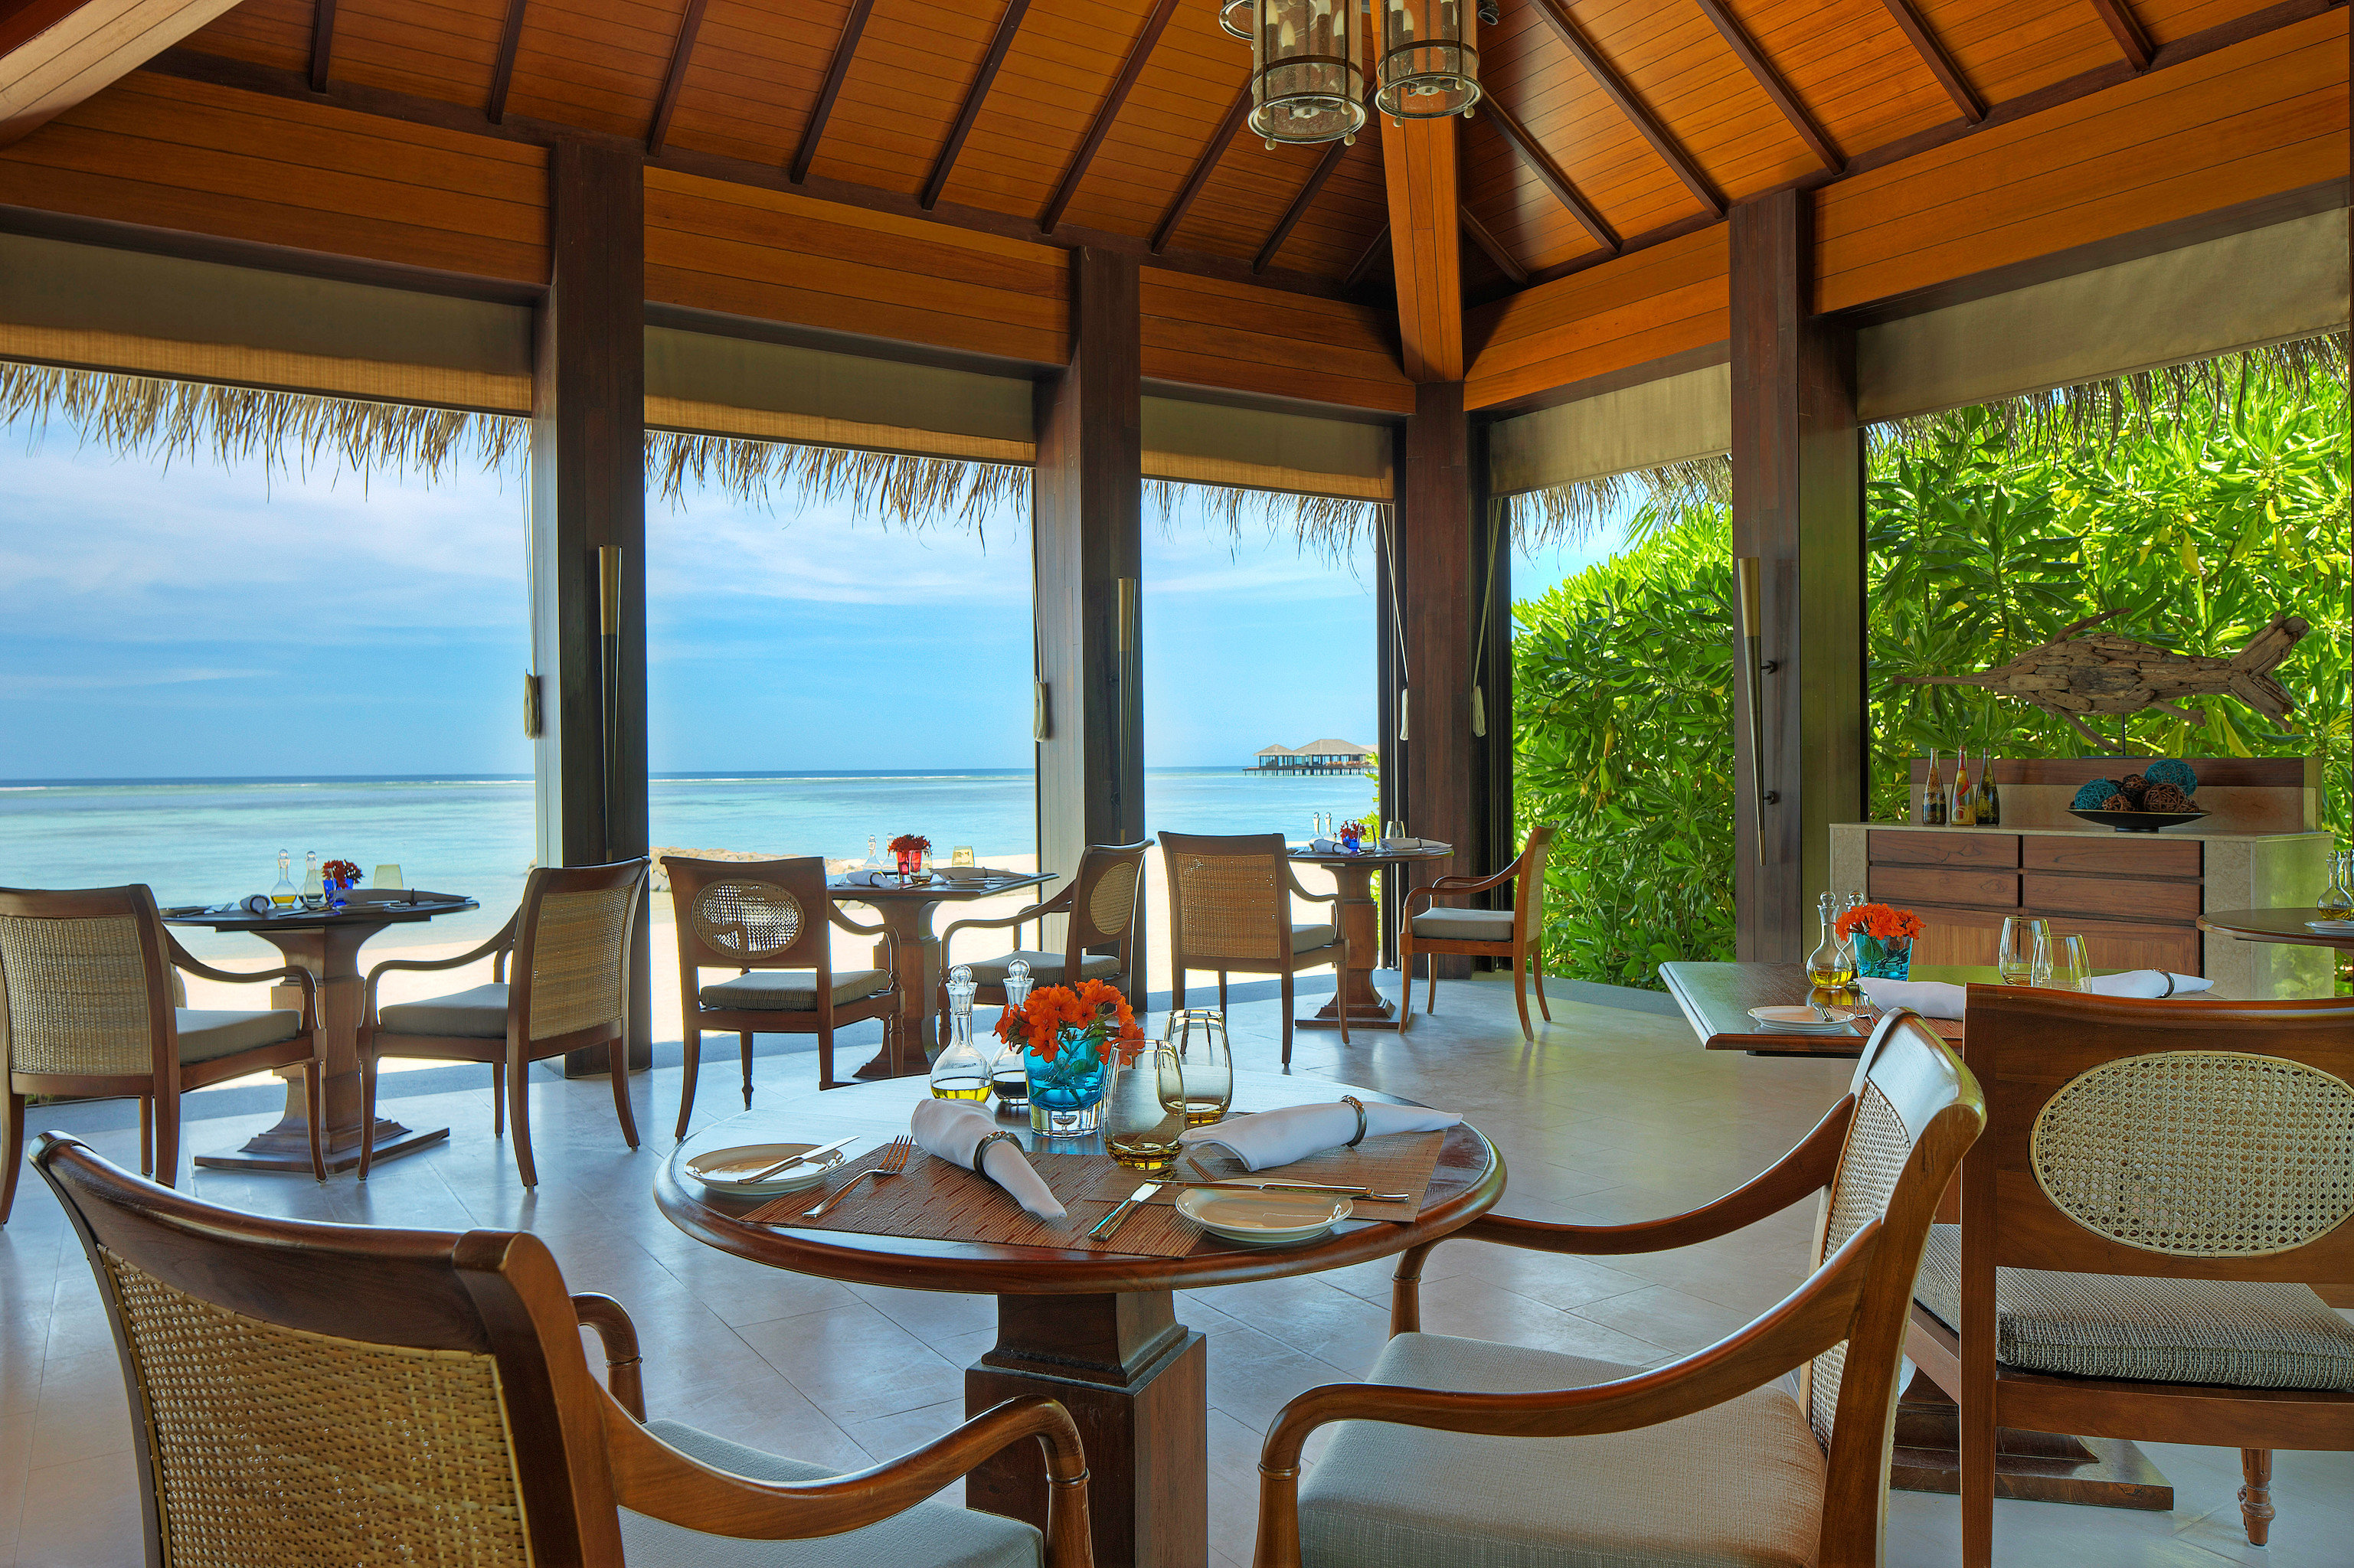 Beachfront Drink Eat Luxury Romantic Tropical chair Dining property Resort Villa cottage home restaurant hacienda eco hotel set overlooking Deck dining table